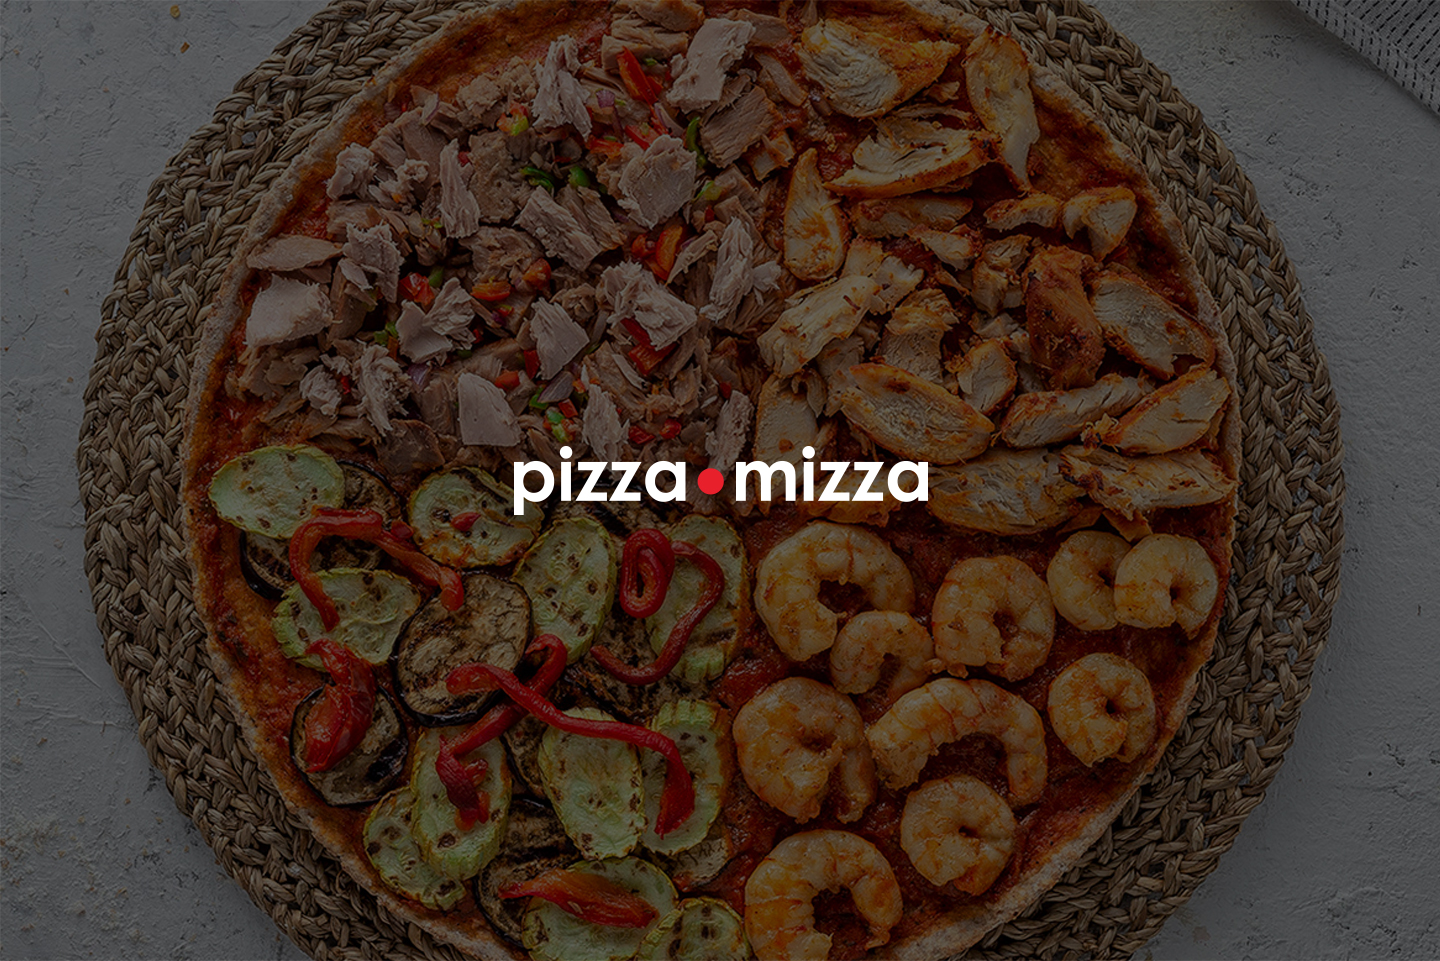 1pizza-mizza-case.jpg